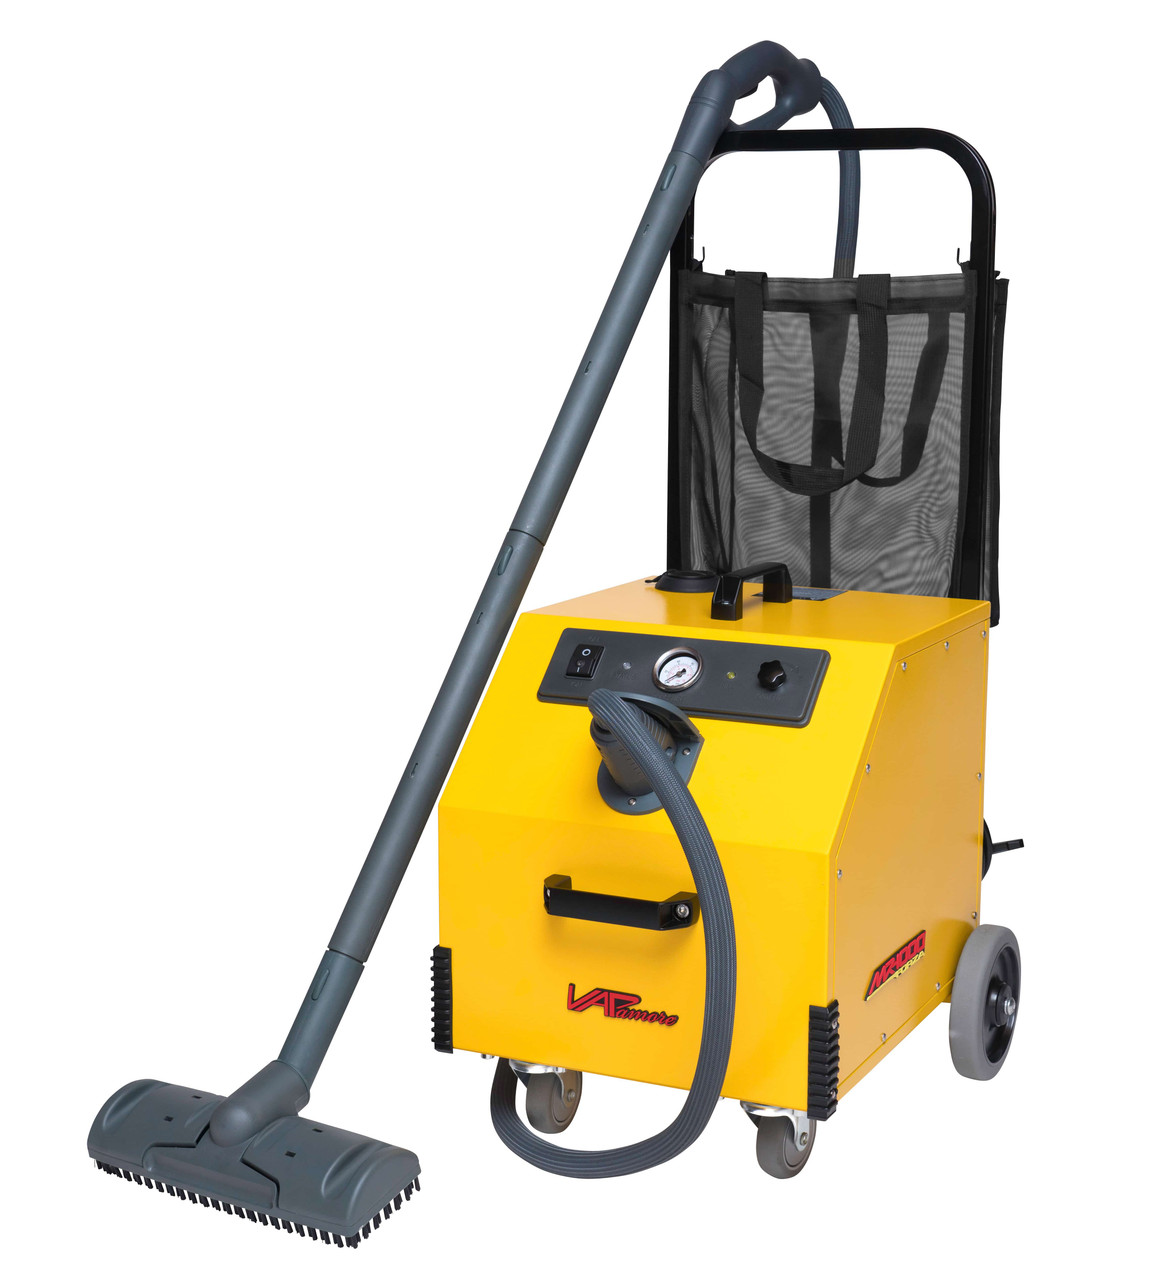 Vapamore Forza MR-1000 Commercial Cleaning System